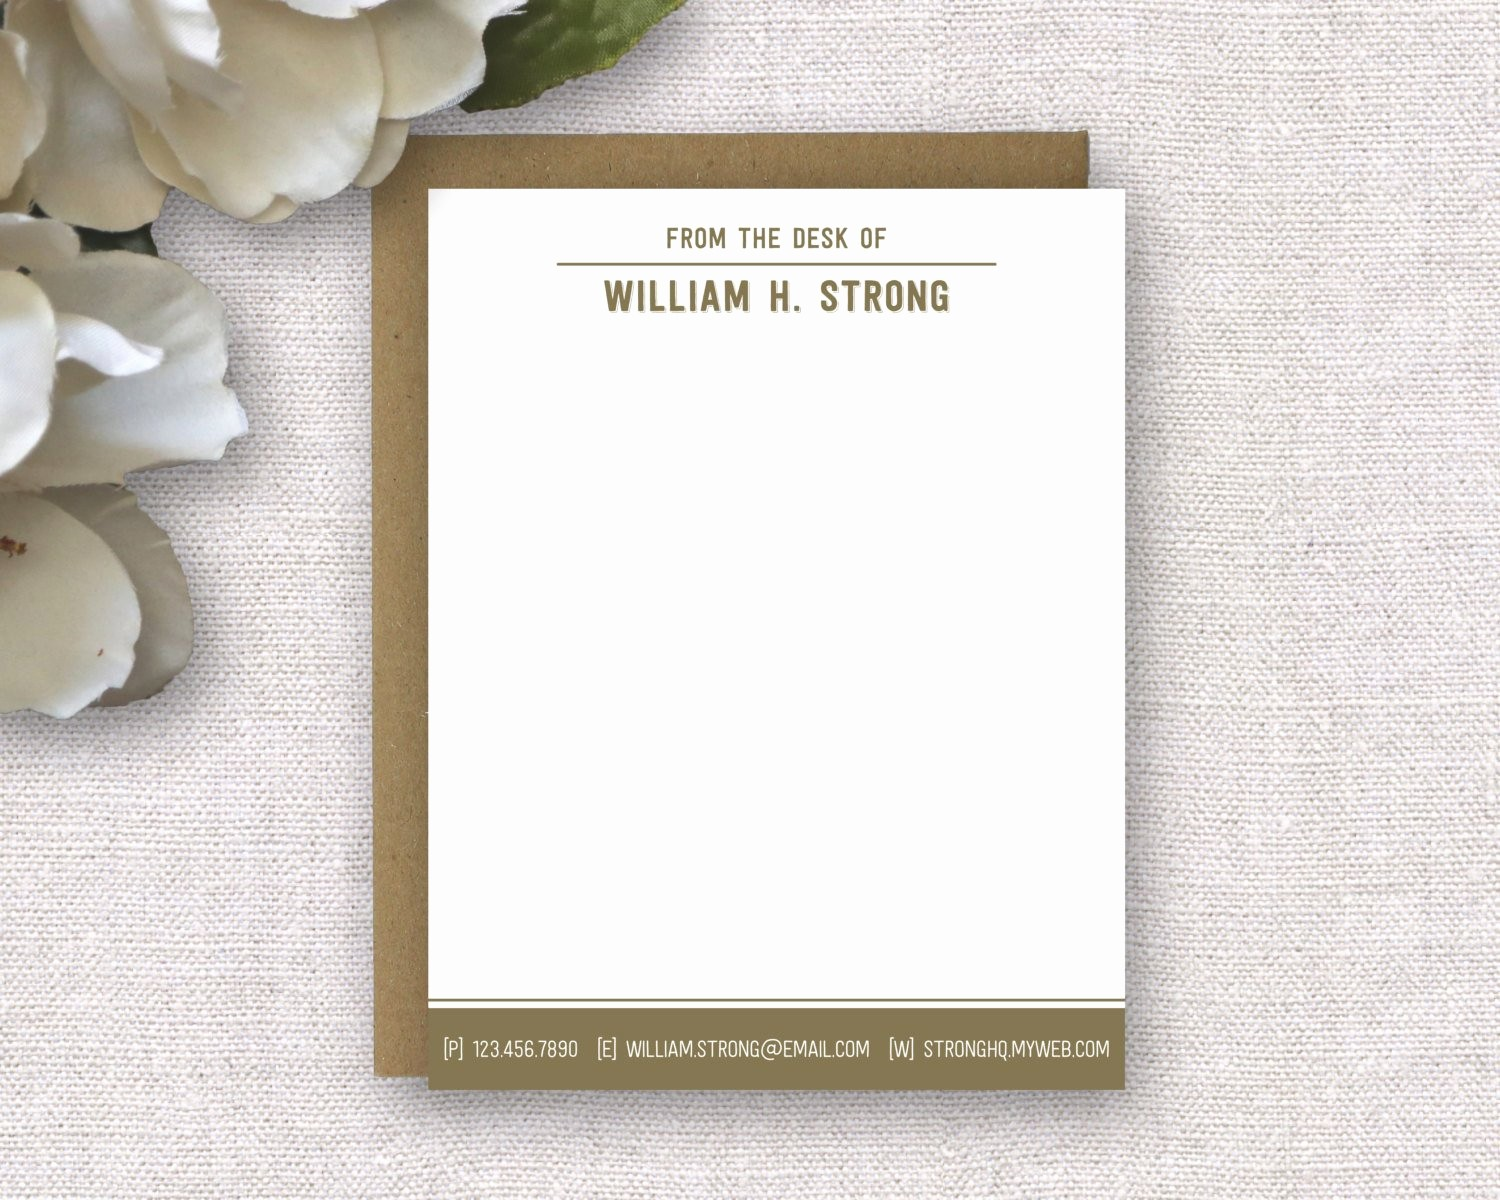 Letterhead From the Desk Of Awesome Personalized Stationery Personalized Stationery for Men